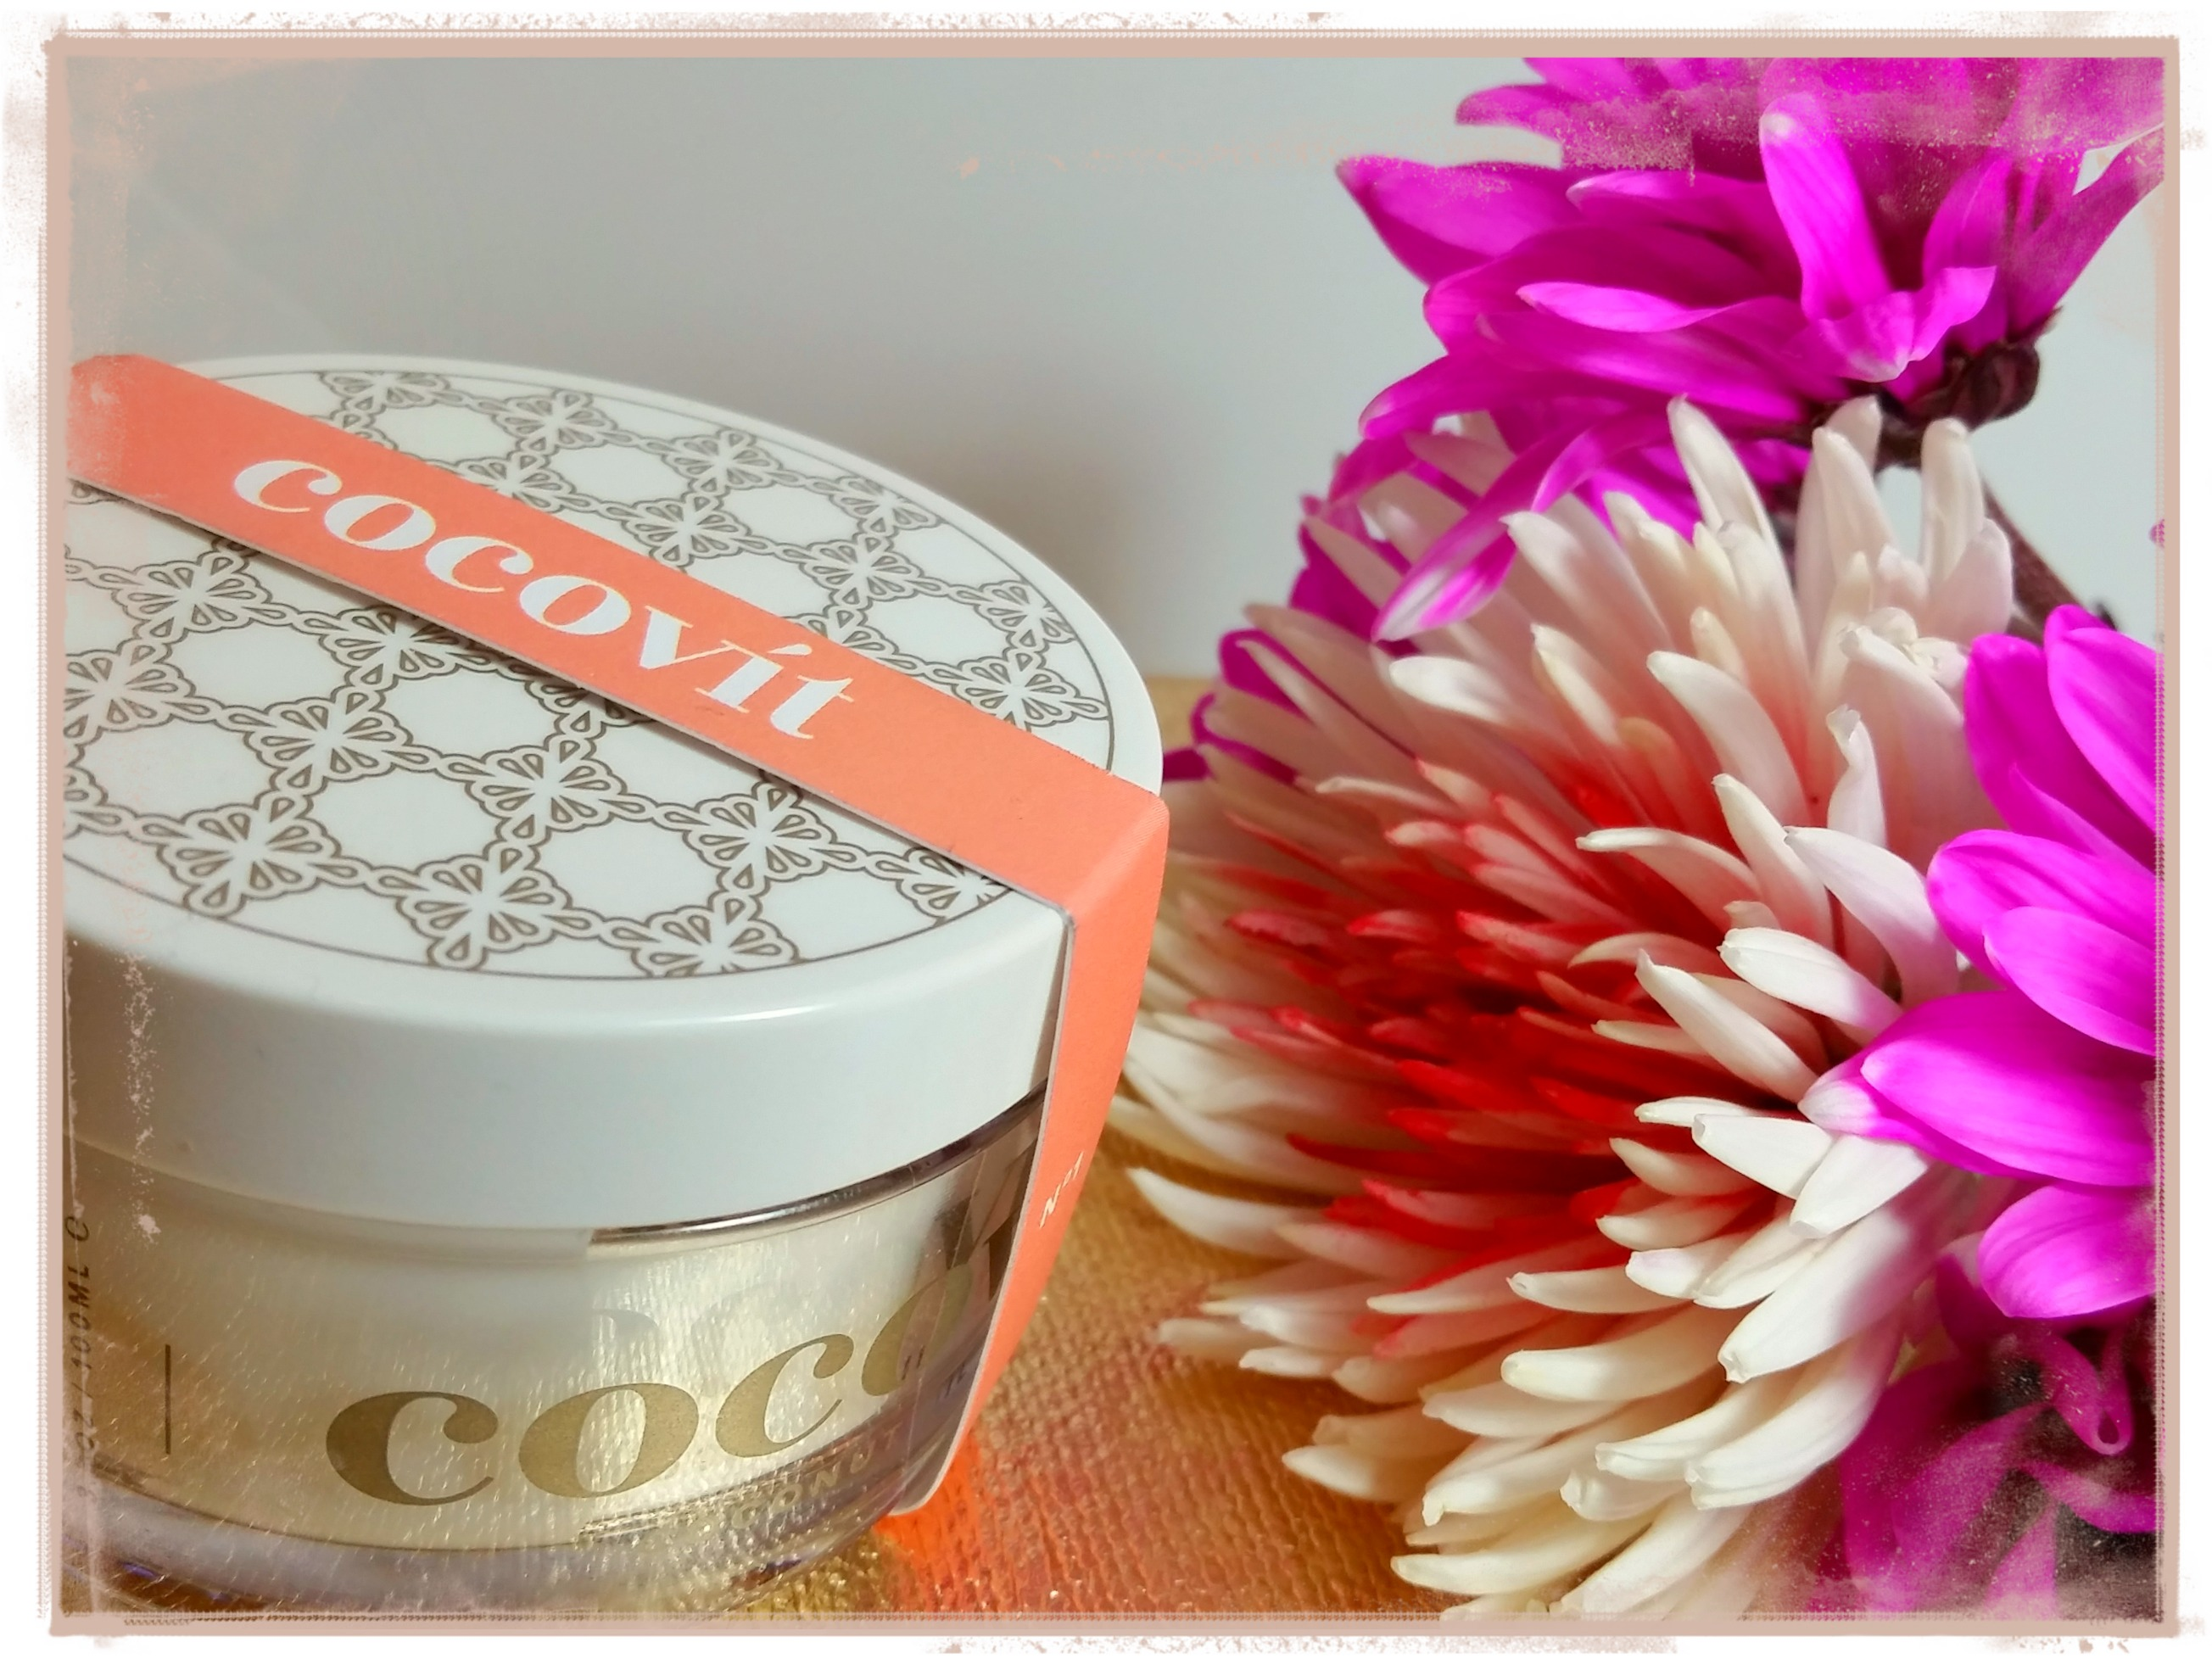 Cocovit Review (By WhippedGreenGirl.com) The best #coconut oil for #skincare